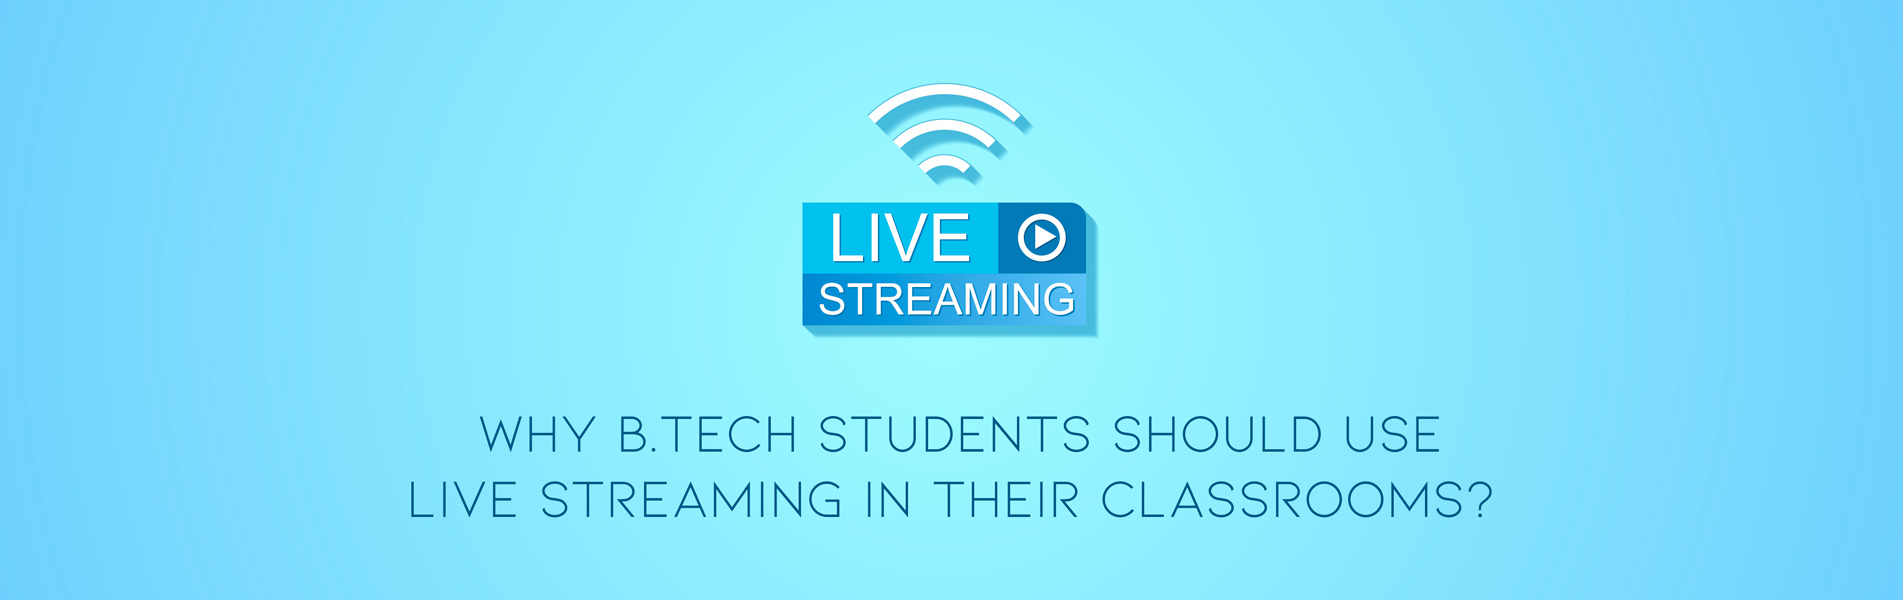 Why-B-Tech-students-should-use-live-streaming-in-their-classrooms